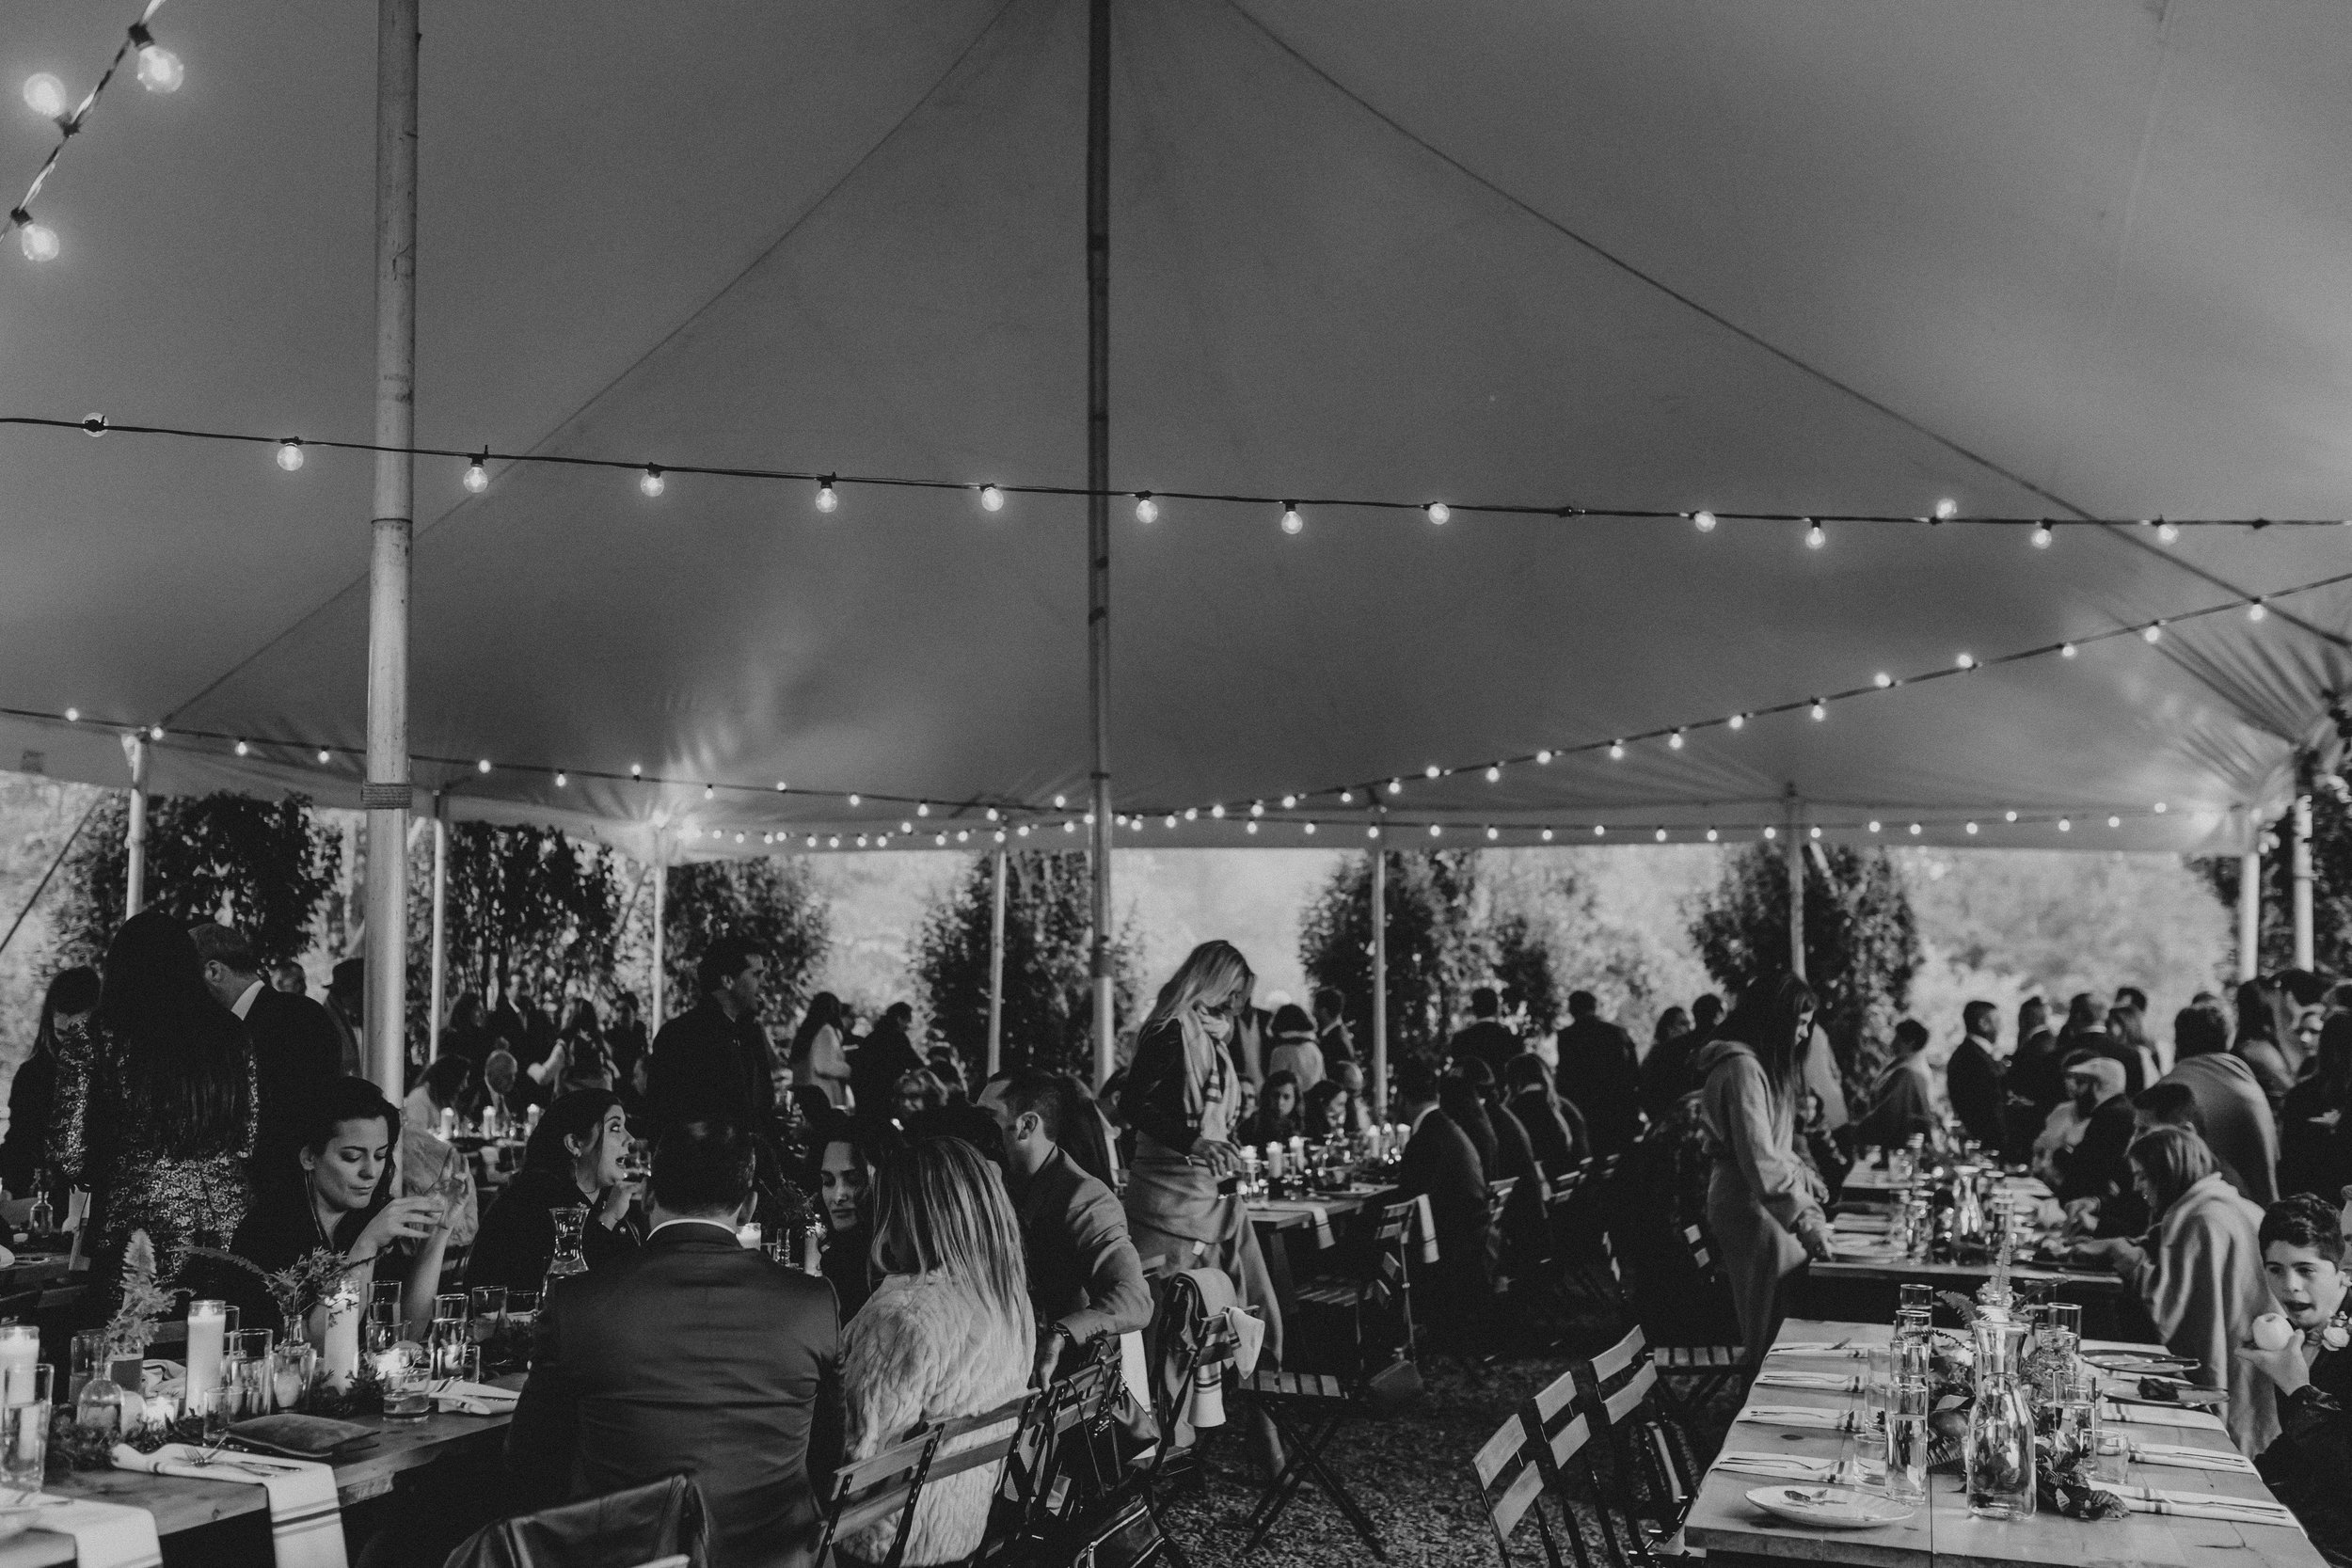 m_and_d_farm_wedding_110.jpg